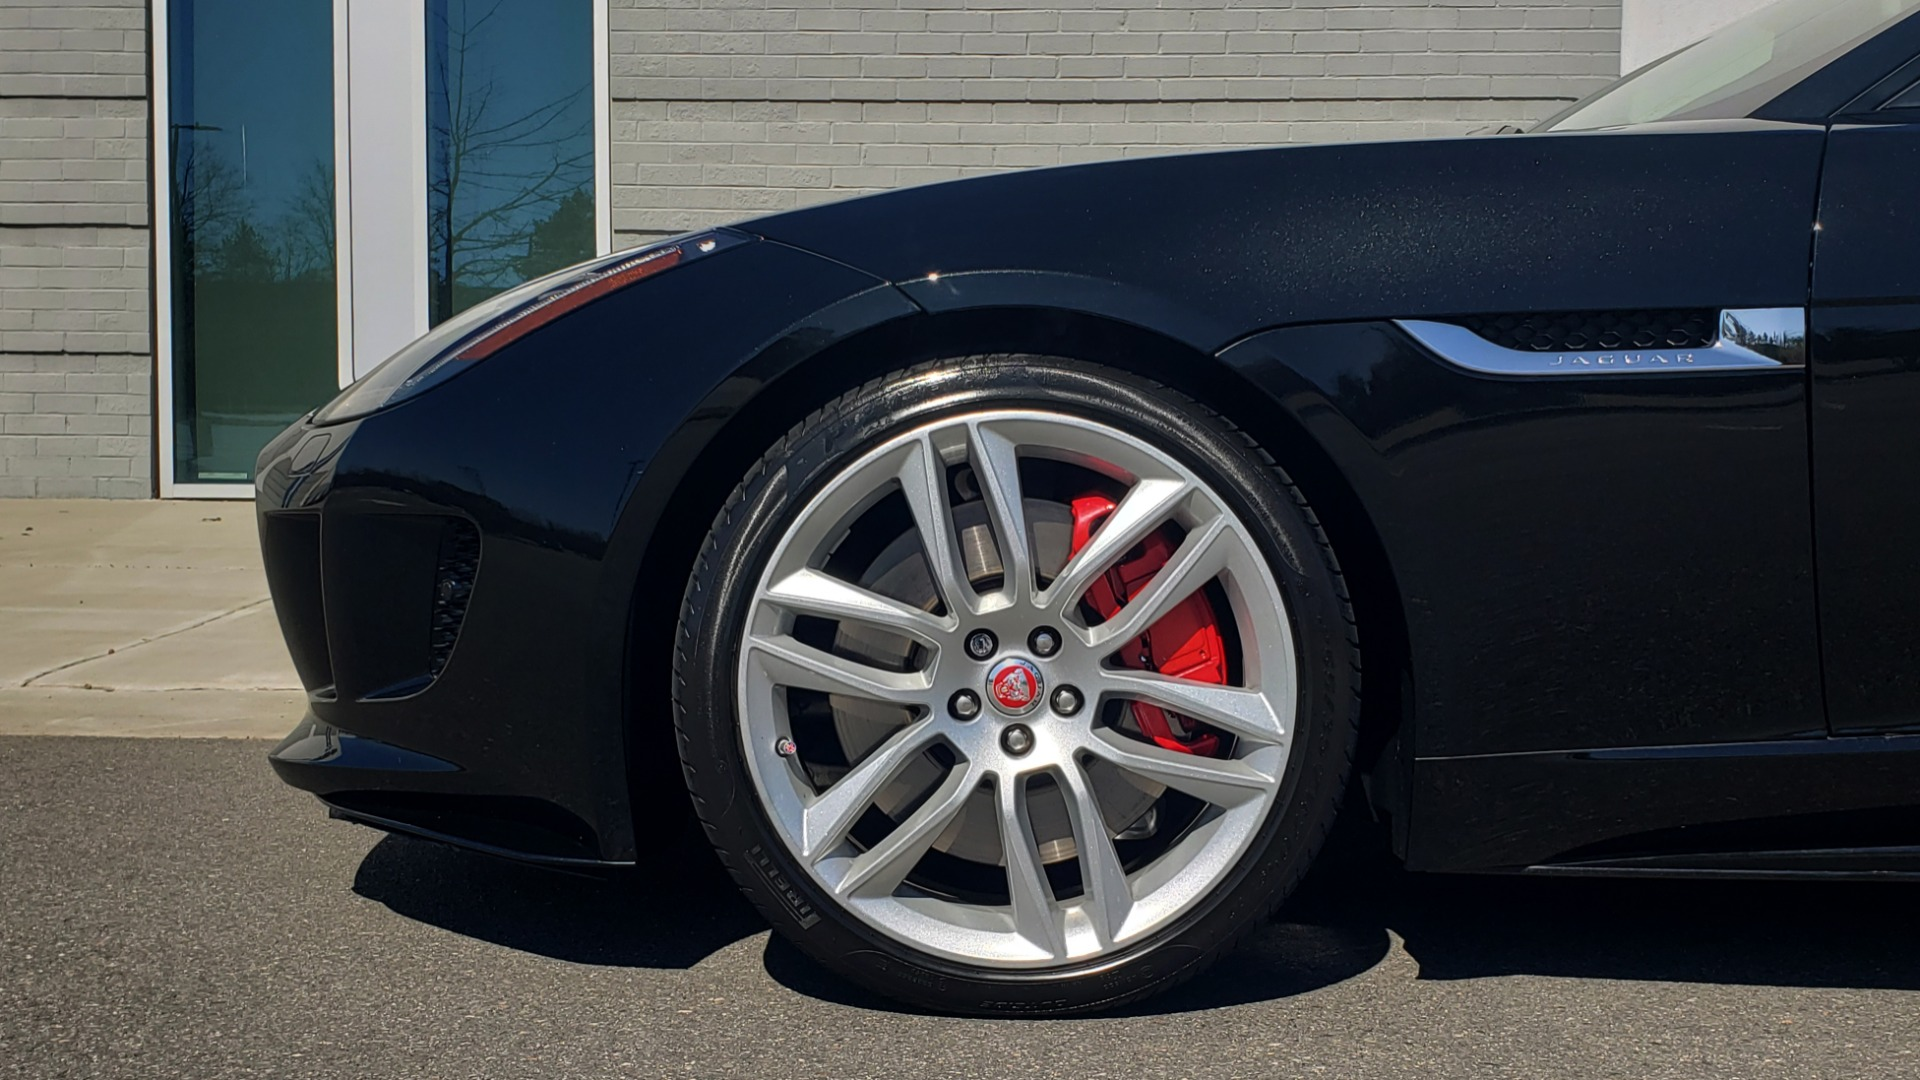 Used 2016 Jaguar F-TYPE R CONVERTIBLE / SC 5.0L 550HP / VISION PACK 3 / BSM / REARVIEW for sale $63,000 at Formula Imports in Charlotte NC 28227 44